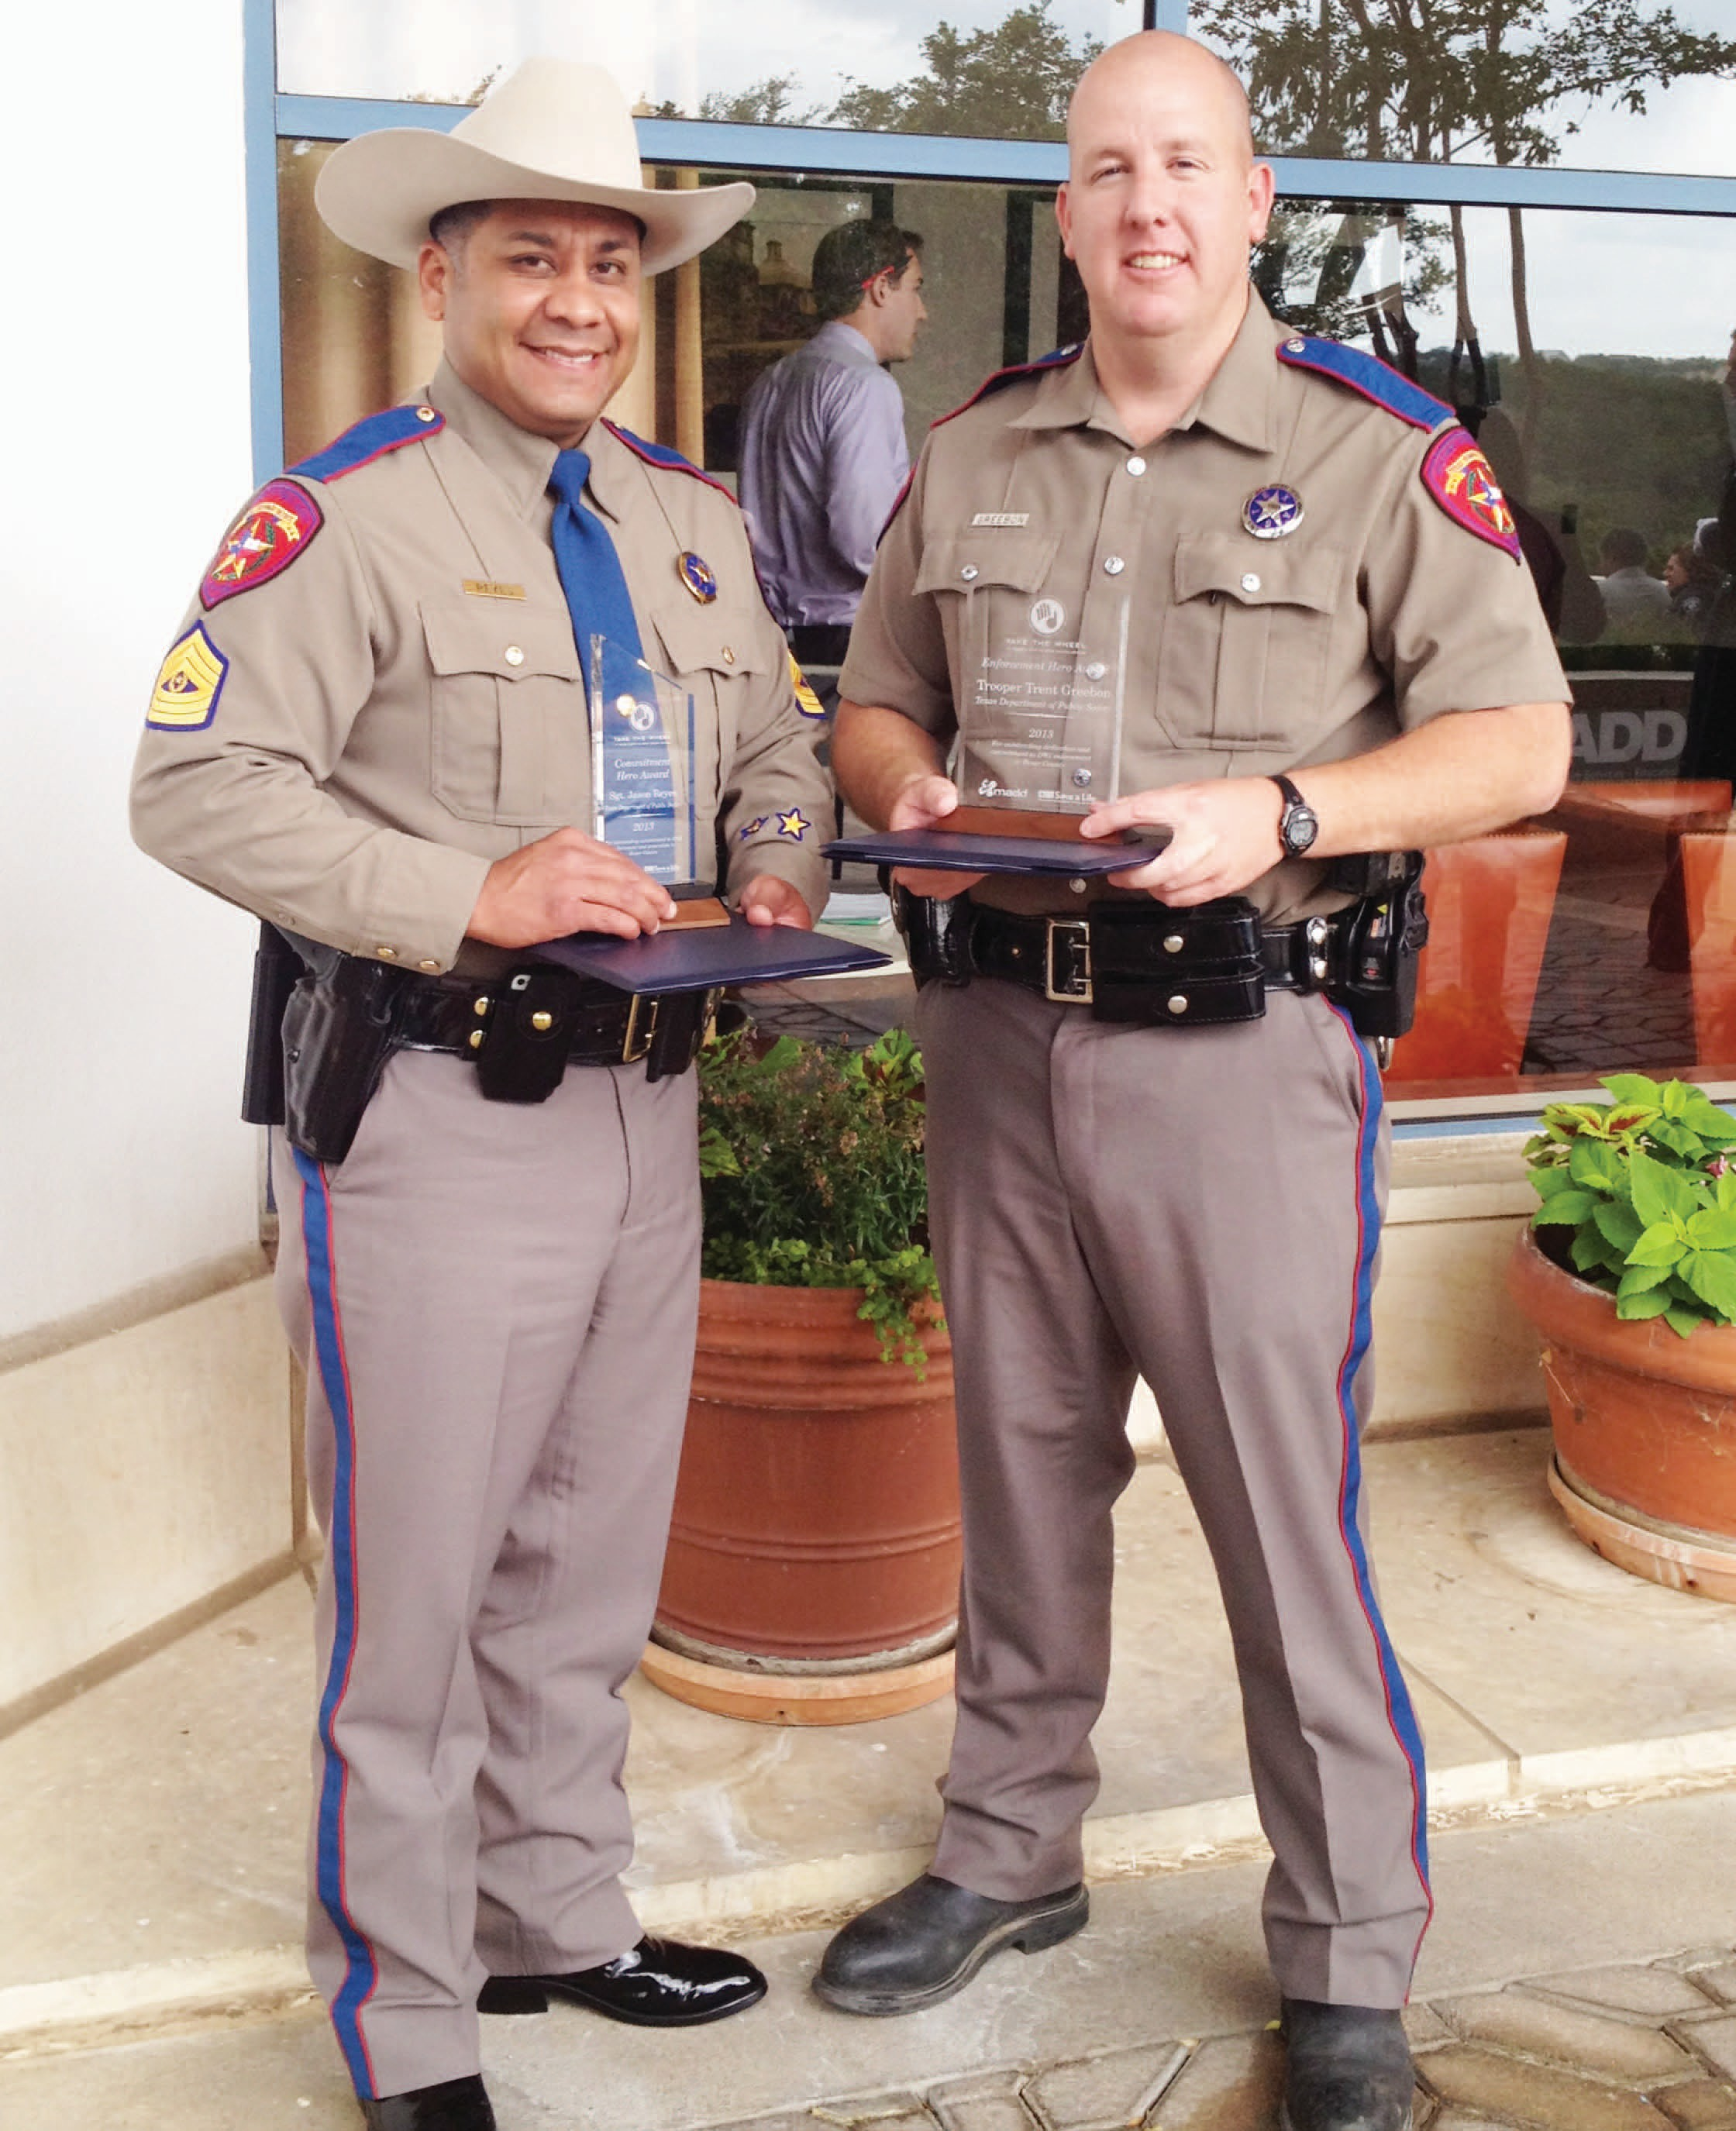 Area officers received top honors for their service during Officer Memorial Week. The event was sponsored by (MADD) Mothers Against Drunk Driving and was held on Wednesday May 15,2013 at Westin La Cantera Hill Country Resort. It recognized these individuals for their efforts against drinking and driving. Sgt. Jason I. Reyes (left) received the Commitment Hero Award while Trent Greebon (right) received the Enforcement Hero Award.